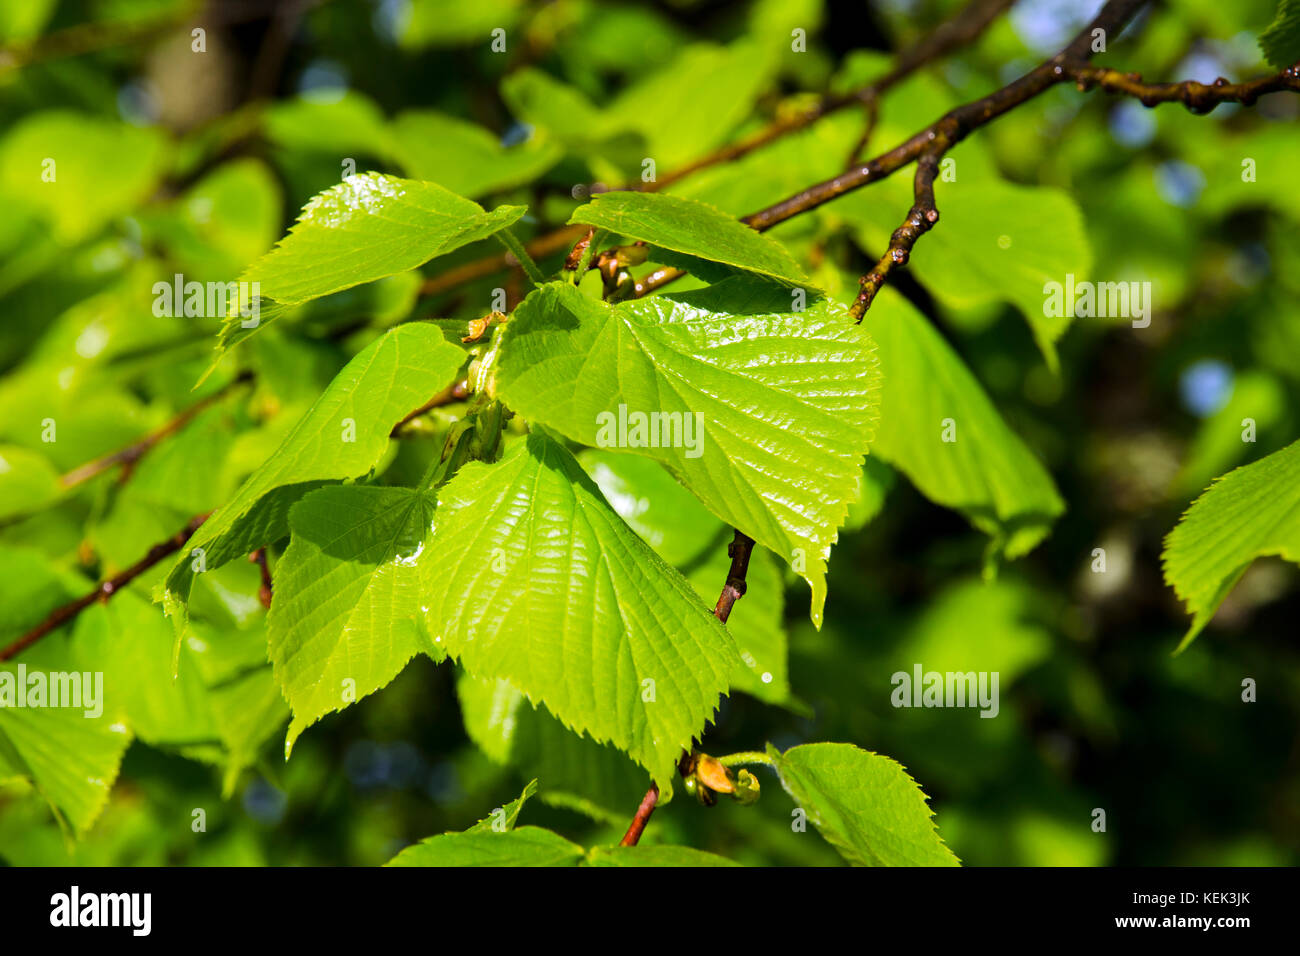 Medicinal Leaves Color Stock Photos & Medicinal Leaves Color Stock ...